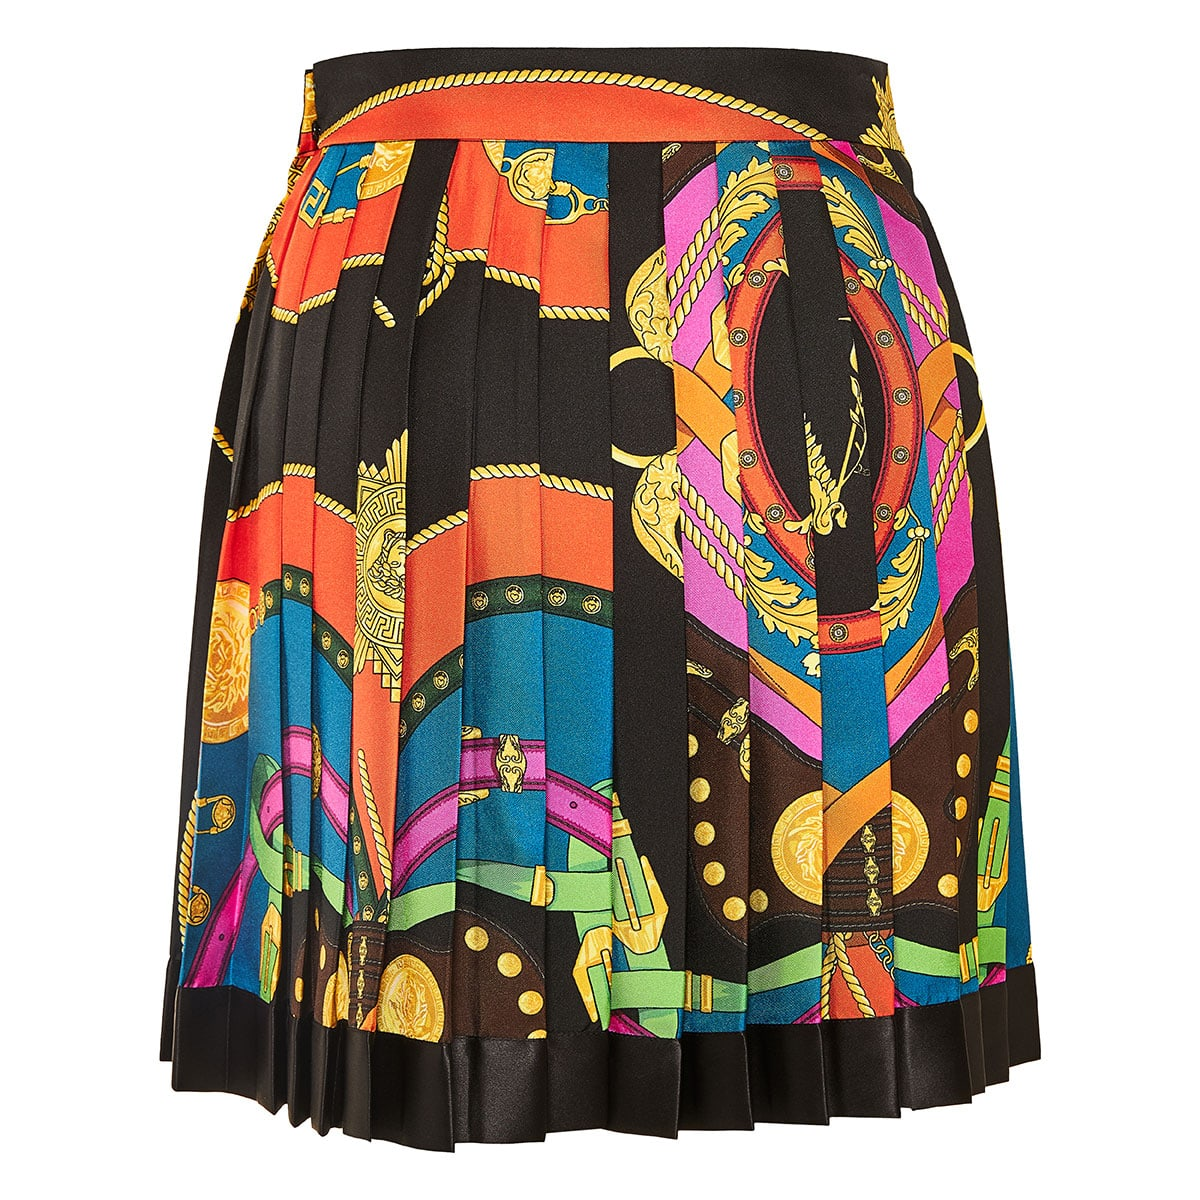 Barocco Rodeo pleated mini skirt